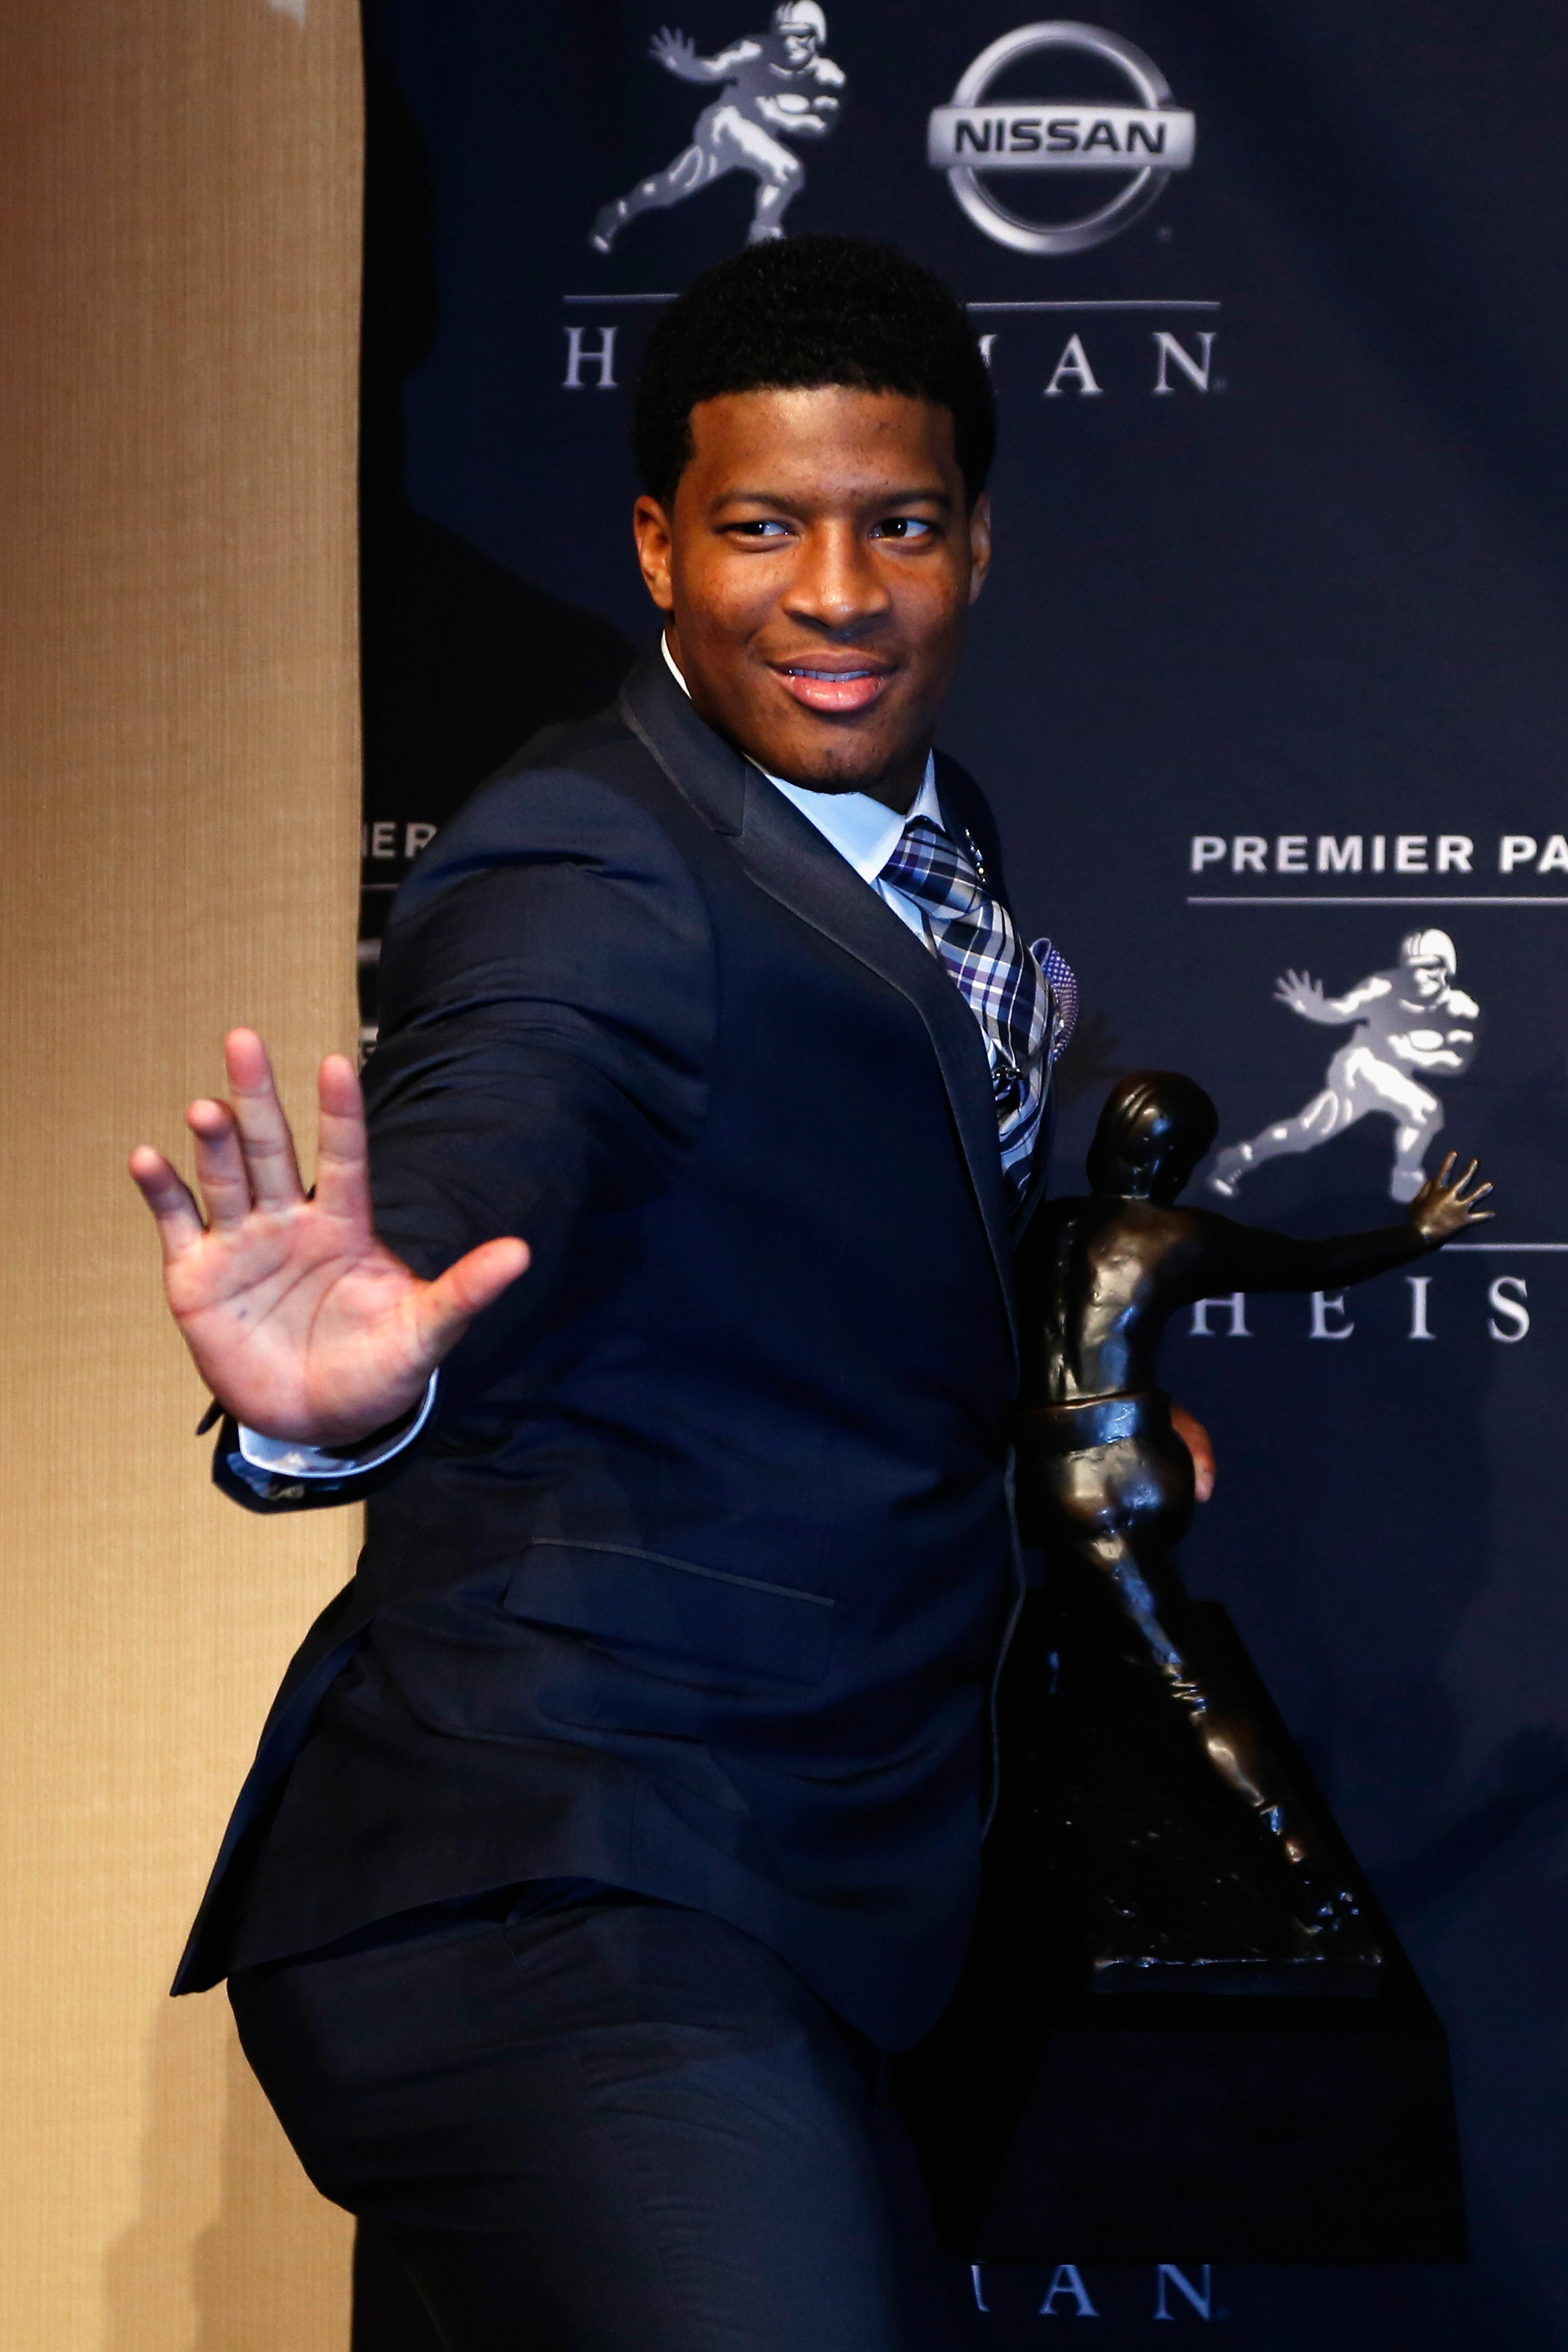 Jameis Winston, quarterback of the Florida State Seminoles, speaks to the media during a press conference after the 2013 Heisman Trophy Presentation at the Marriott Marquis on Dec. 14, 2013 in New York City.